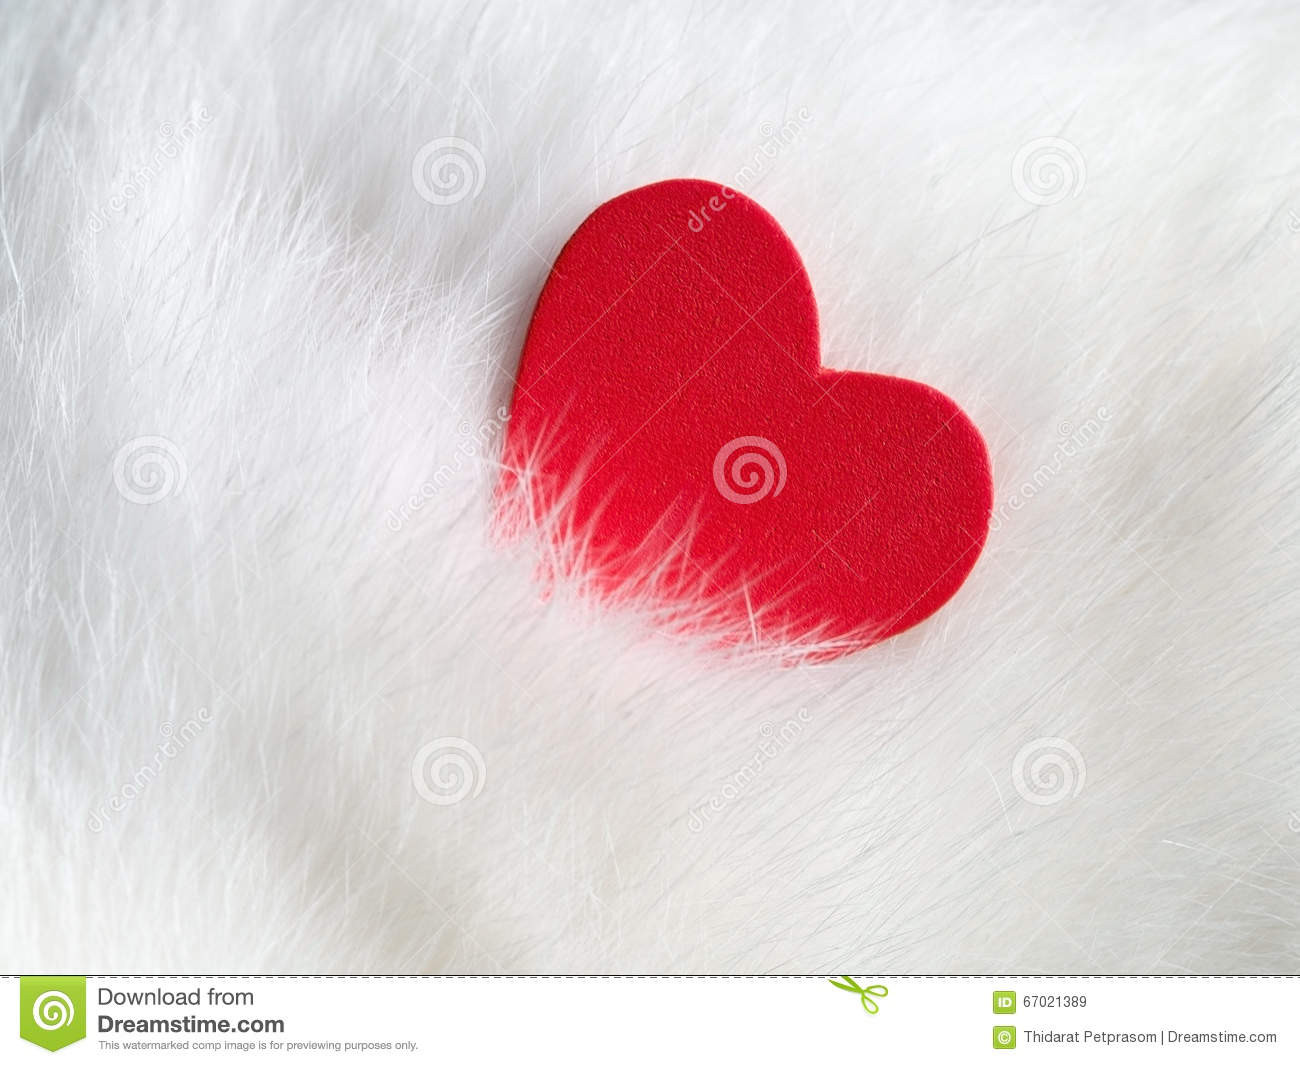 Red Heart with Love Awesome Love Concept Valentine S Day Background Red Heart with Red Of Red Heart with Love Fresh Love Heart Impremedia